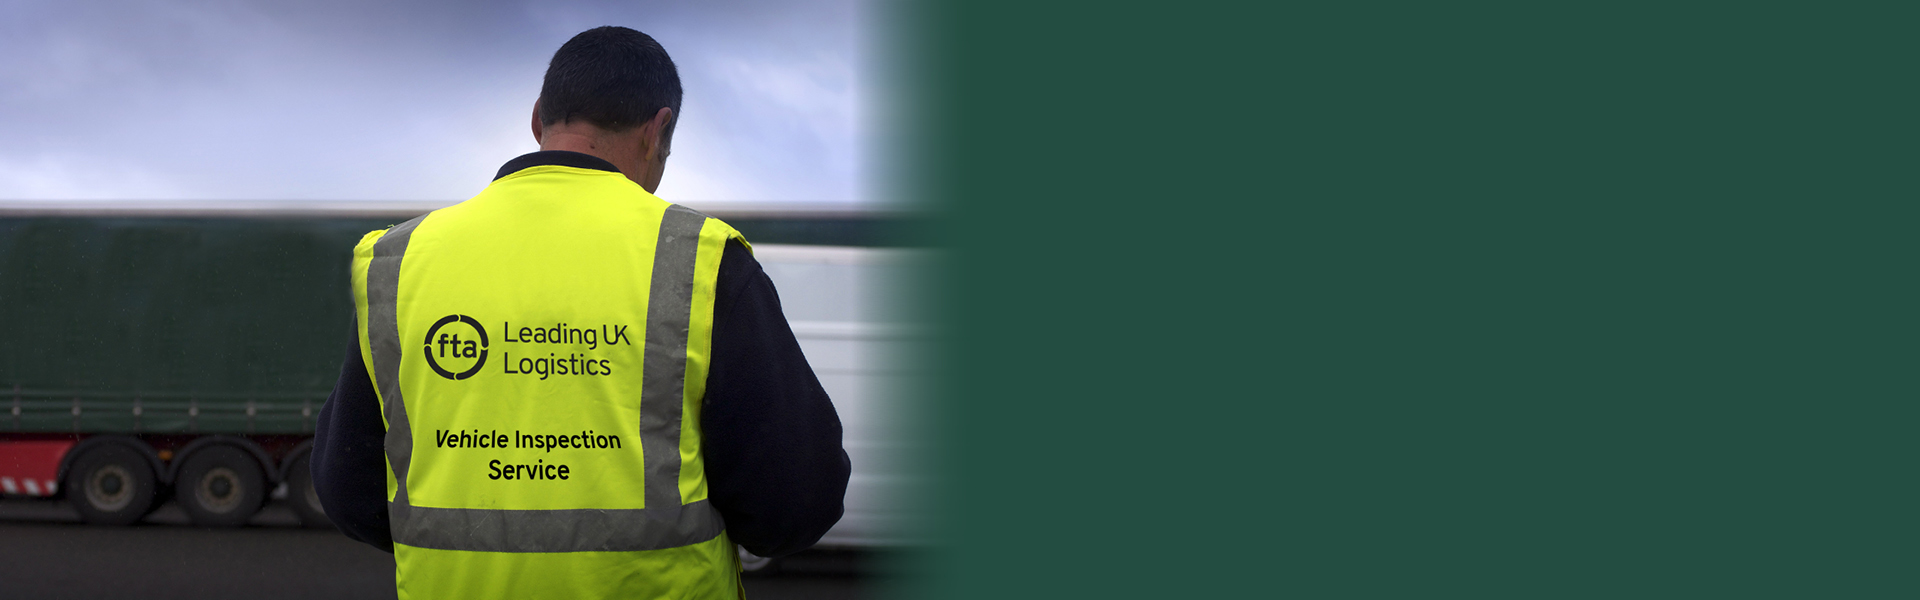 Join our Vehicle Inspection Service Team